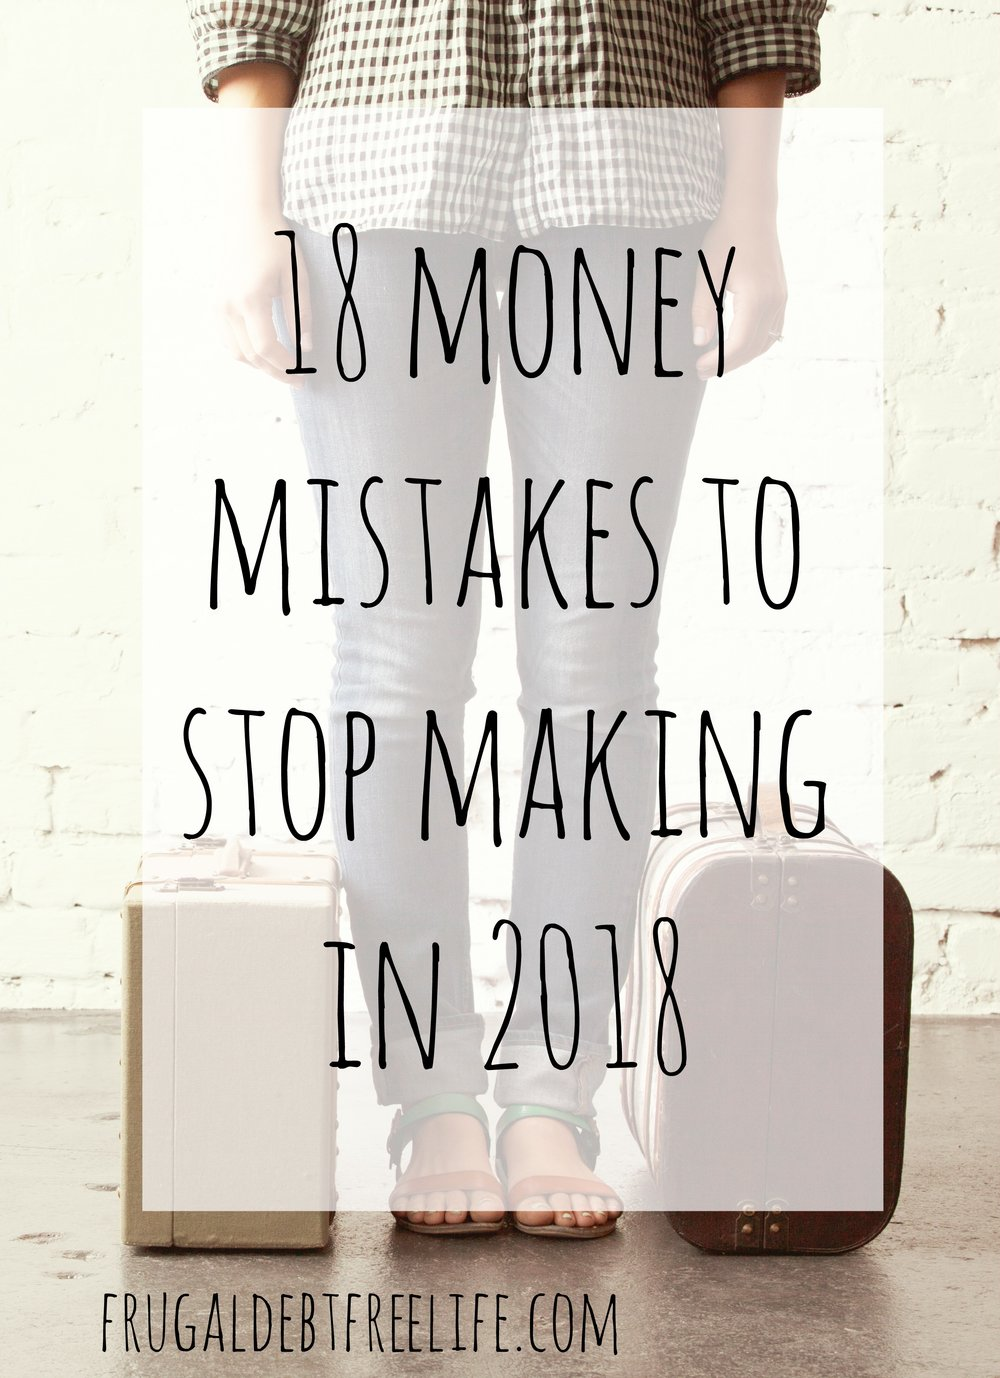 18 money mistakes to stop making in 2018.jpg